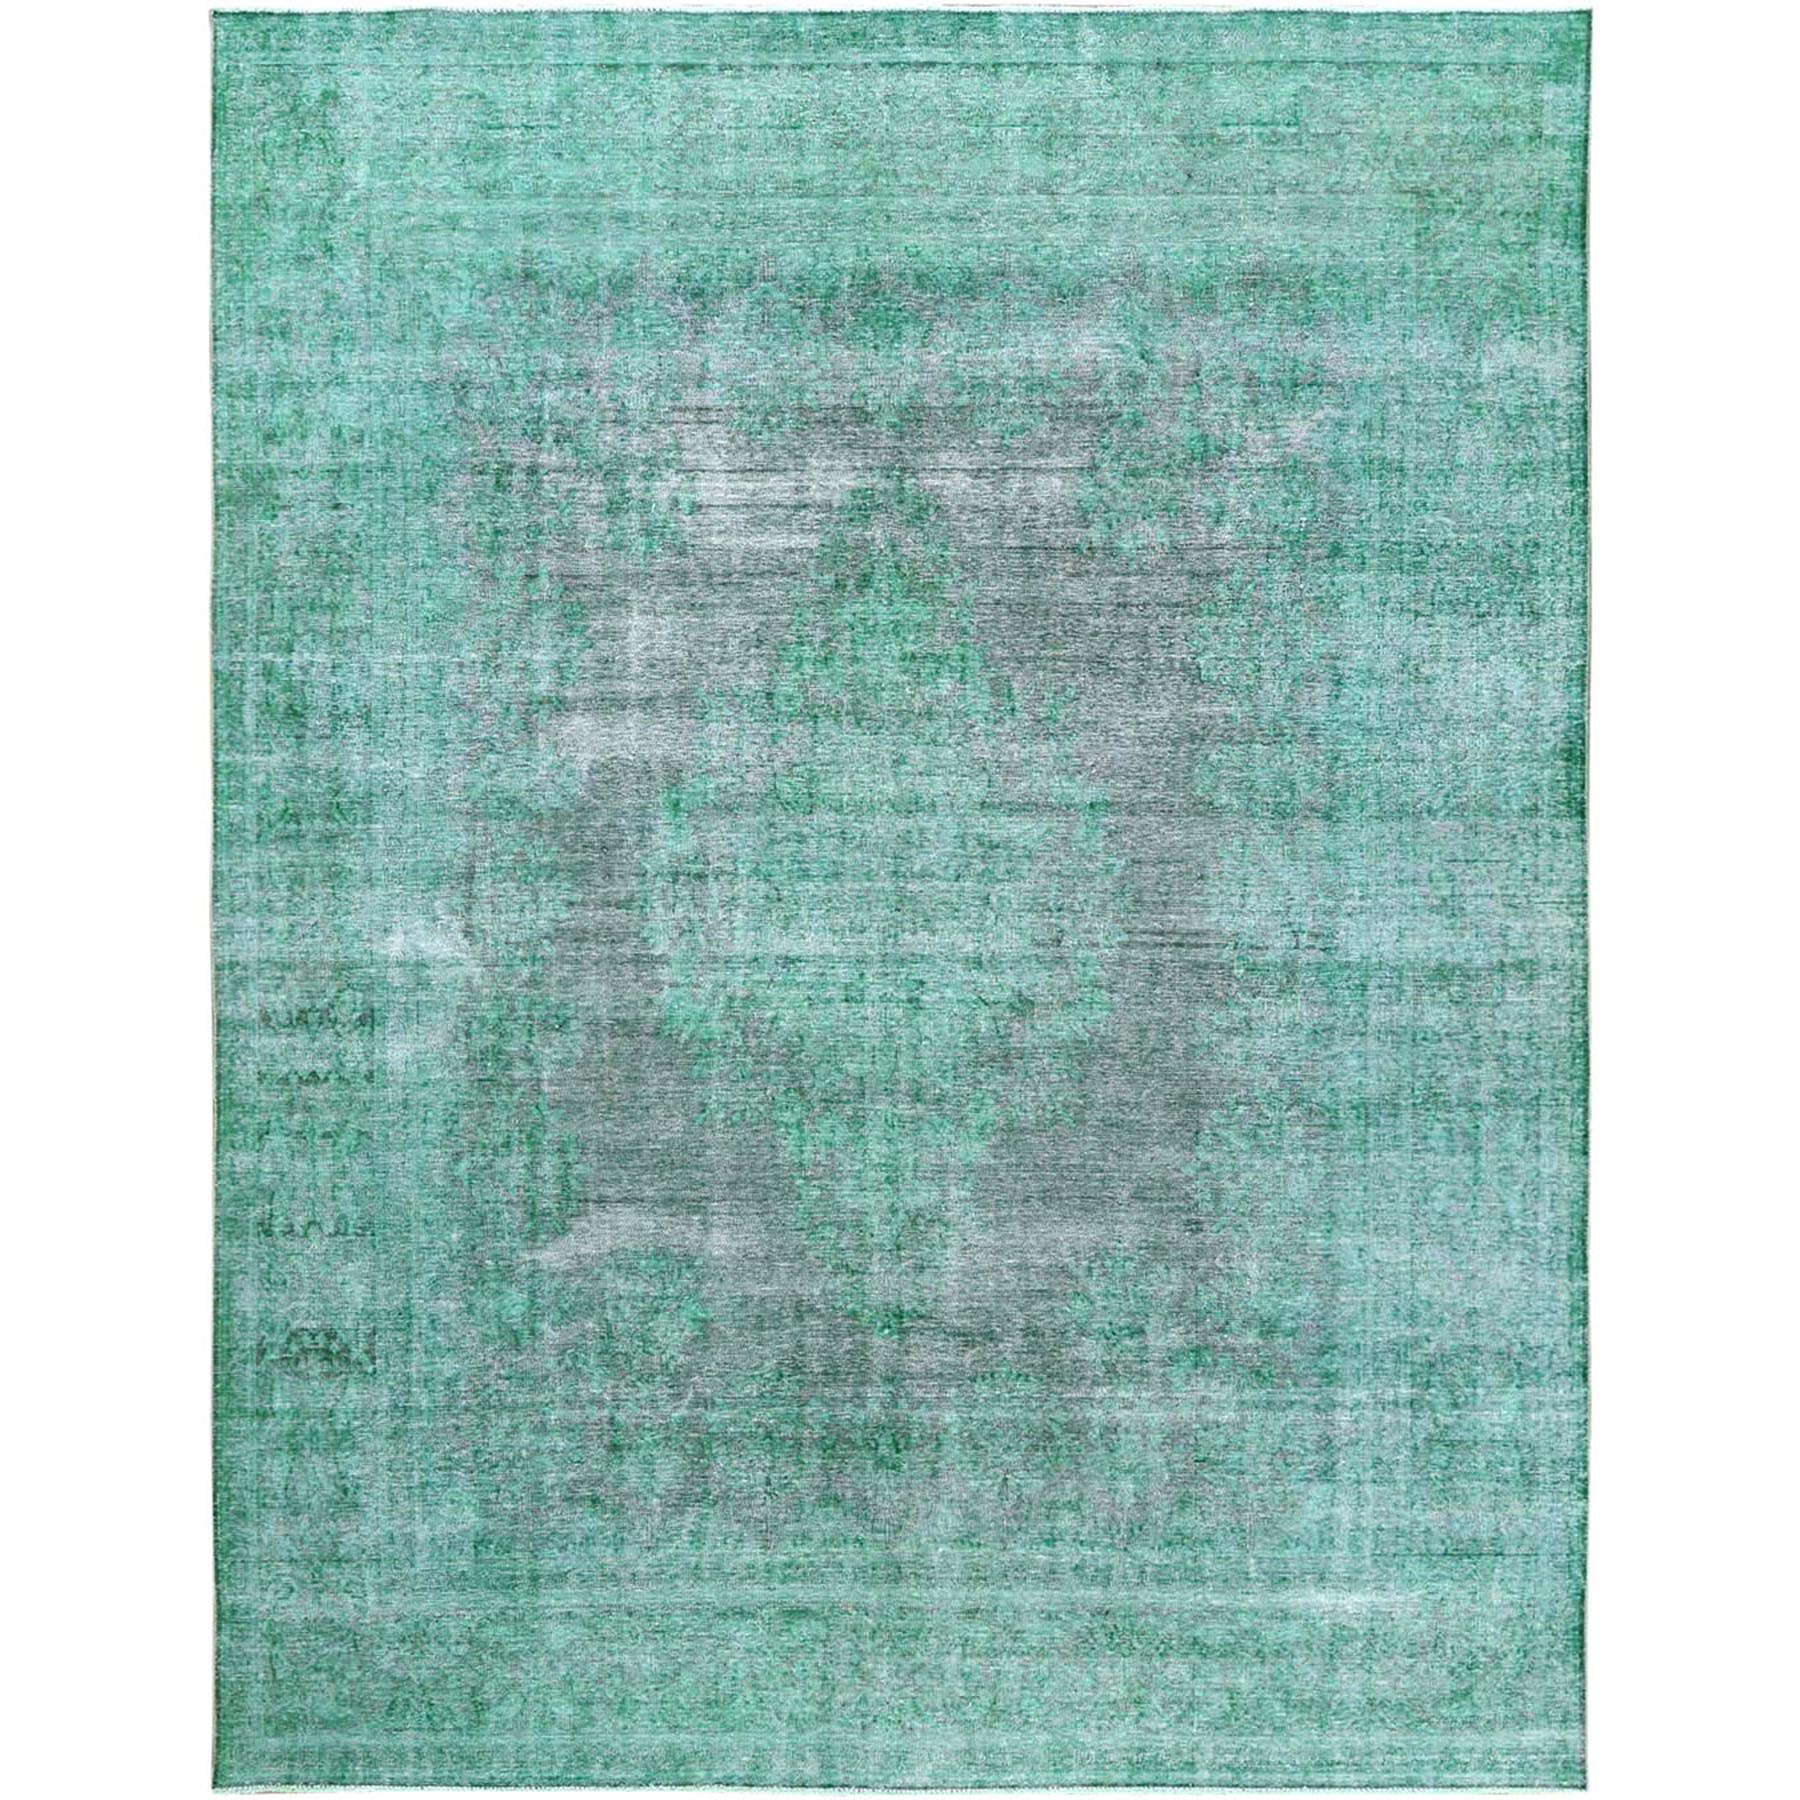 Fetneh Collection And Vintage Overdyed Collection Hand Knotted Green Rug No: 1120610